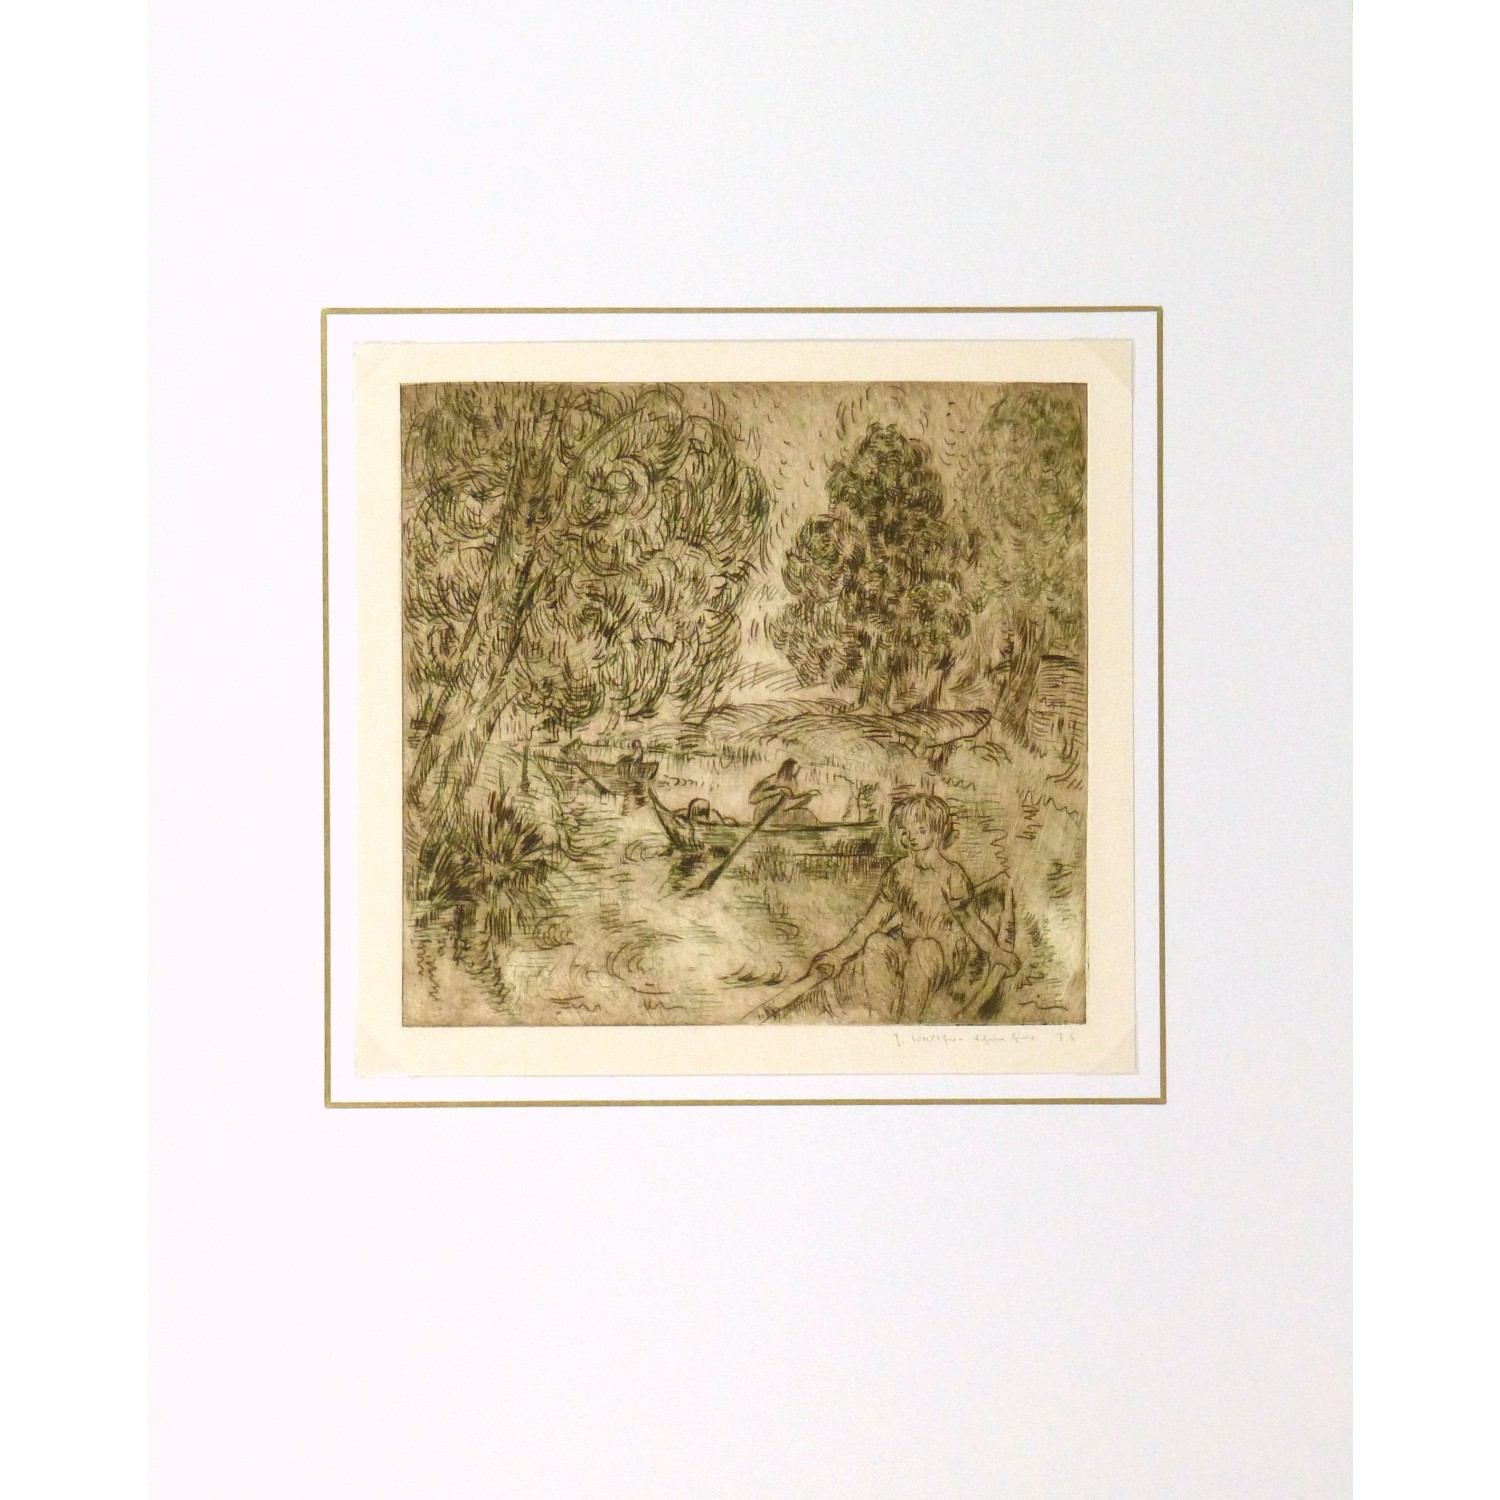 Vintage Aquatint Etching by Julla Walther Golden Pond - matted - 9153m